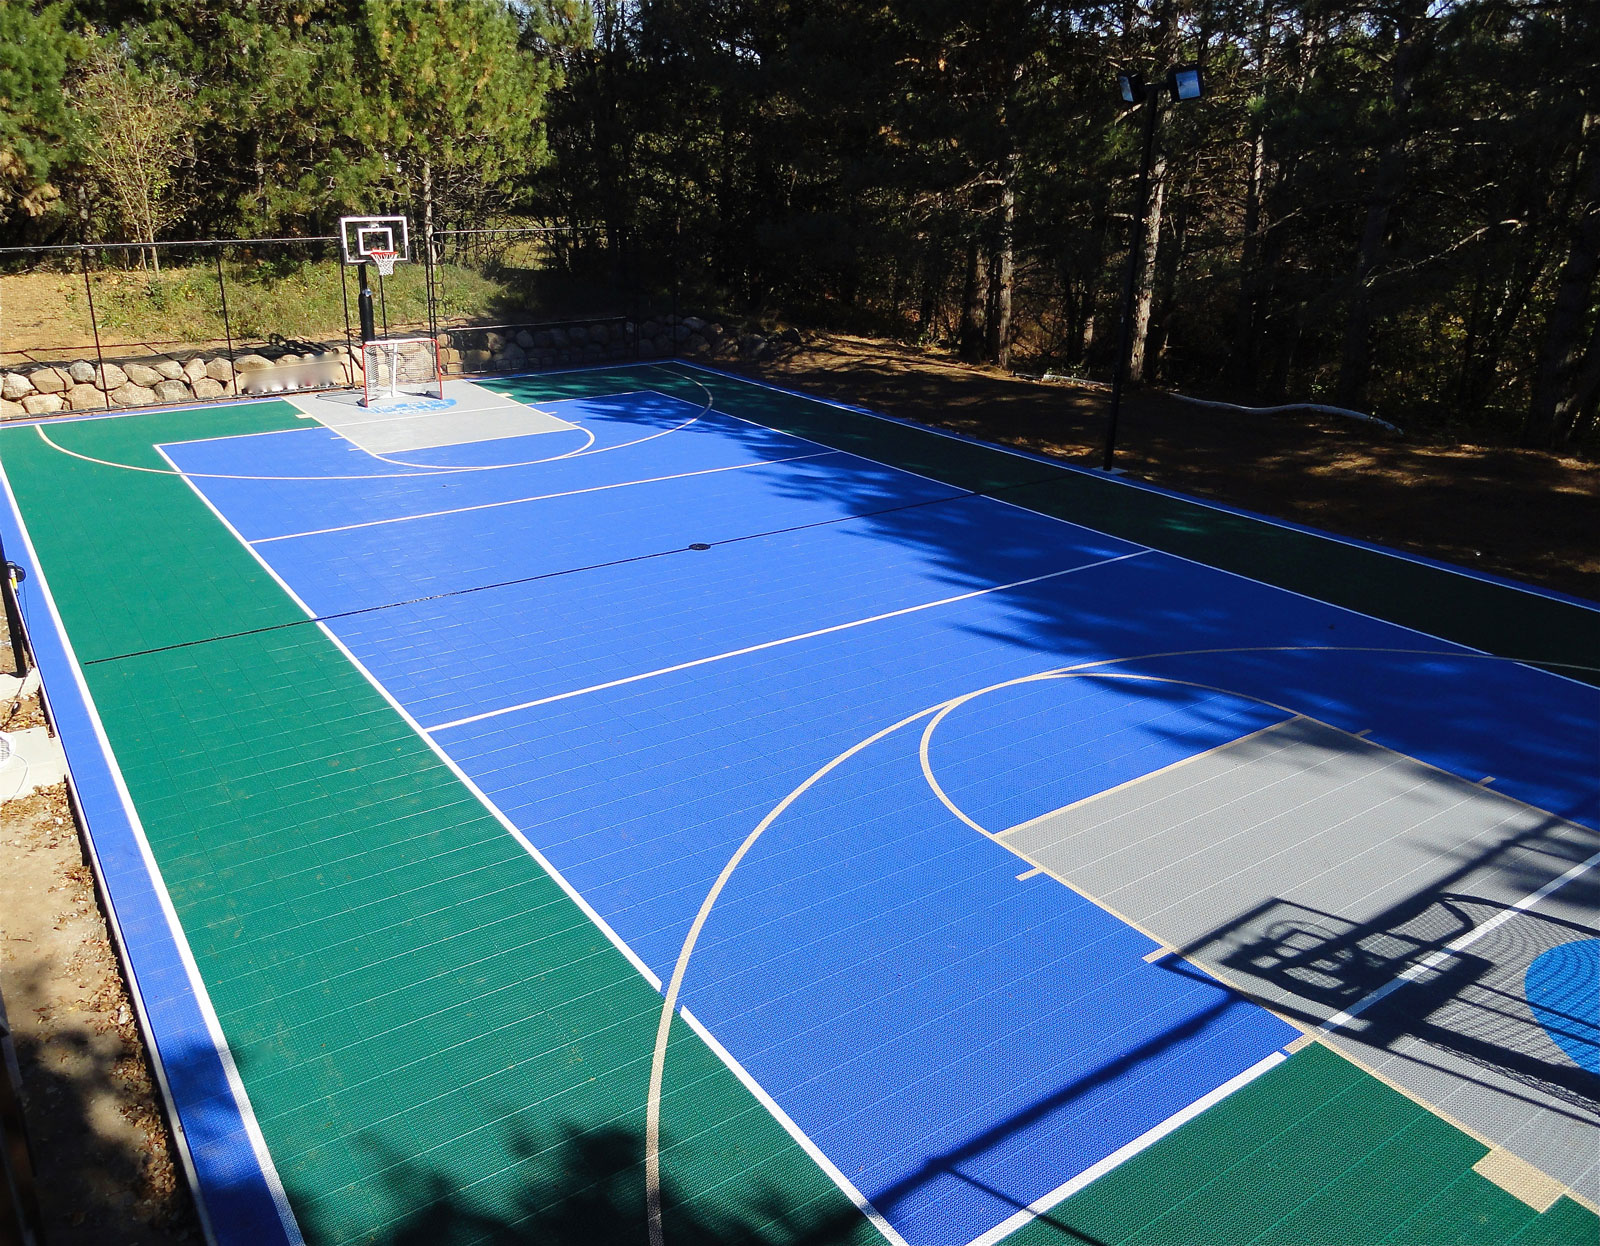 Full multi-court in evergreen, bright blue and gray with hockey lines